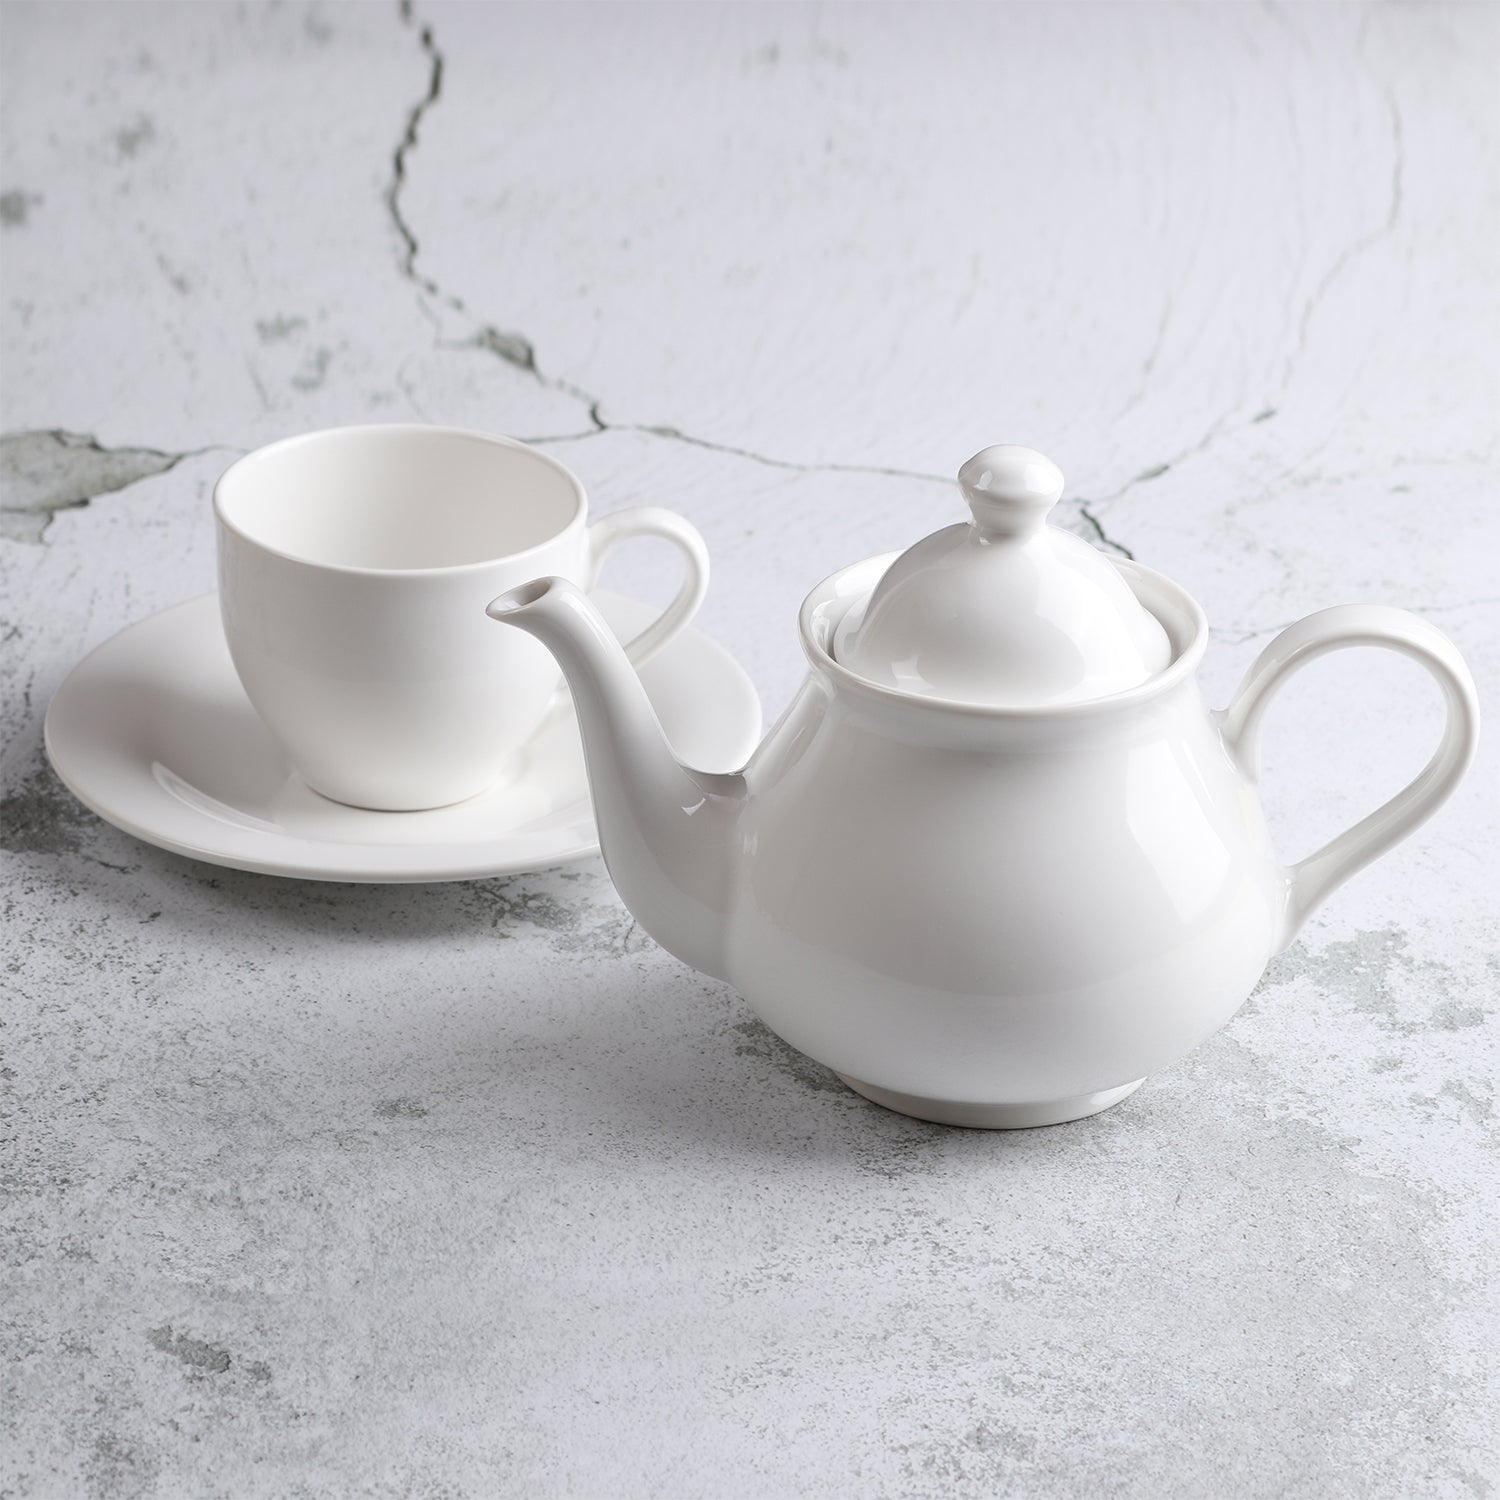 13 Pcs Tea / Coffee Set. Preorder 30 days for delivery.